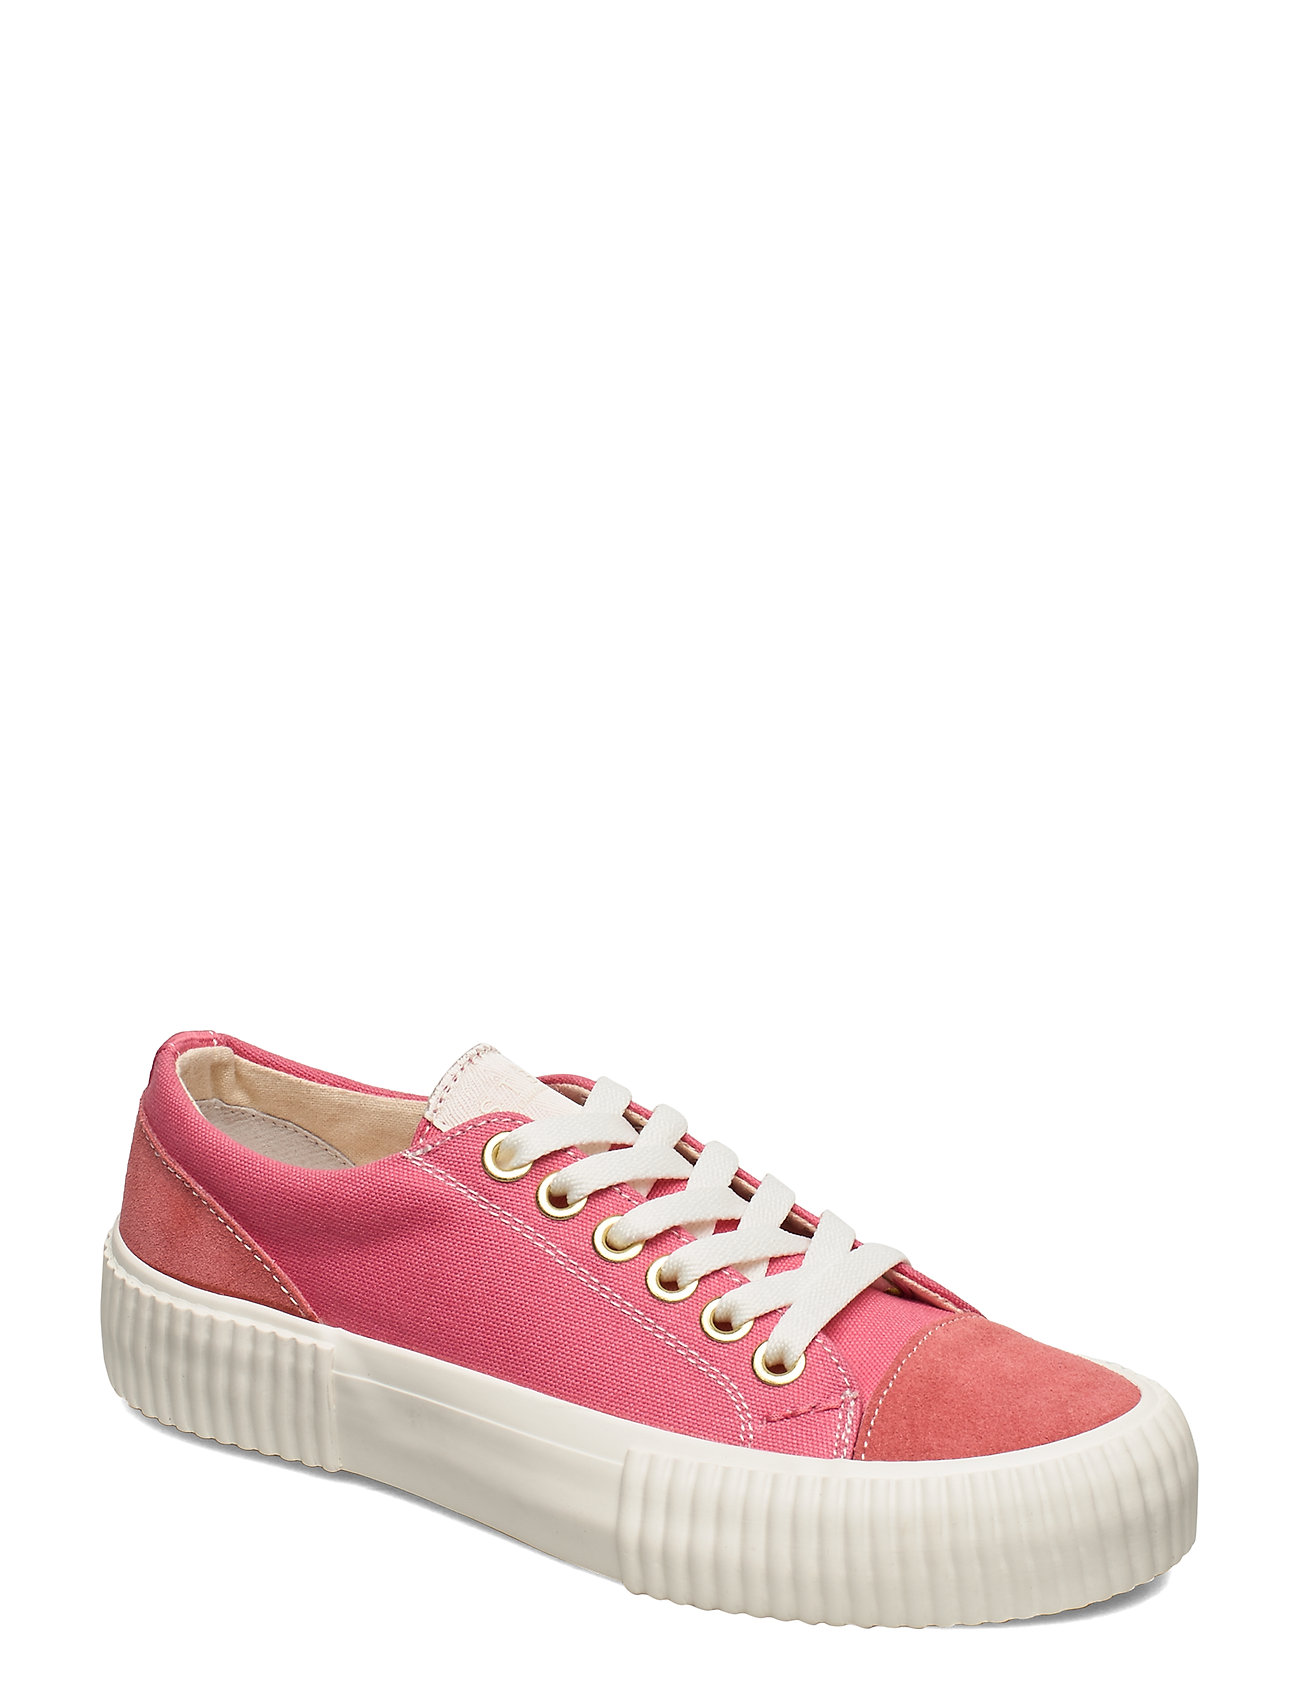 Image of Stb-Andrea T Low-top Sneakers Rød Shoe The Bear (3359209593)